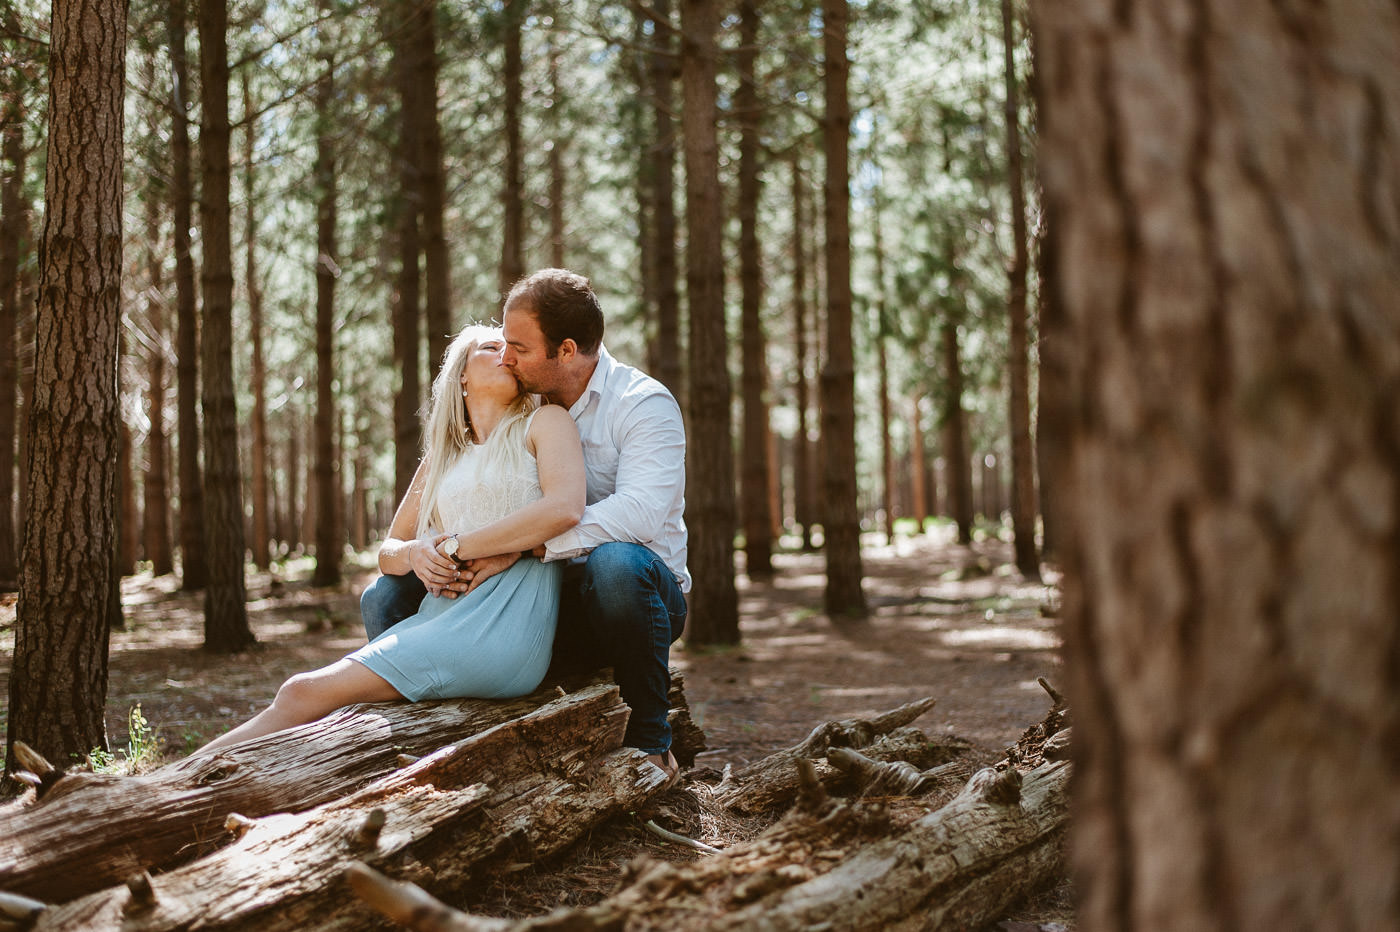 Tokai forest engagement photography